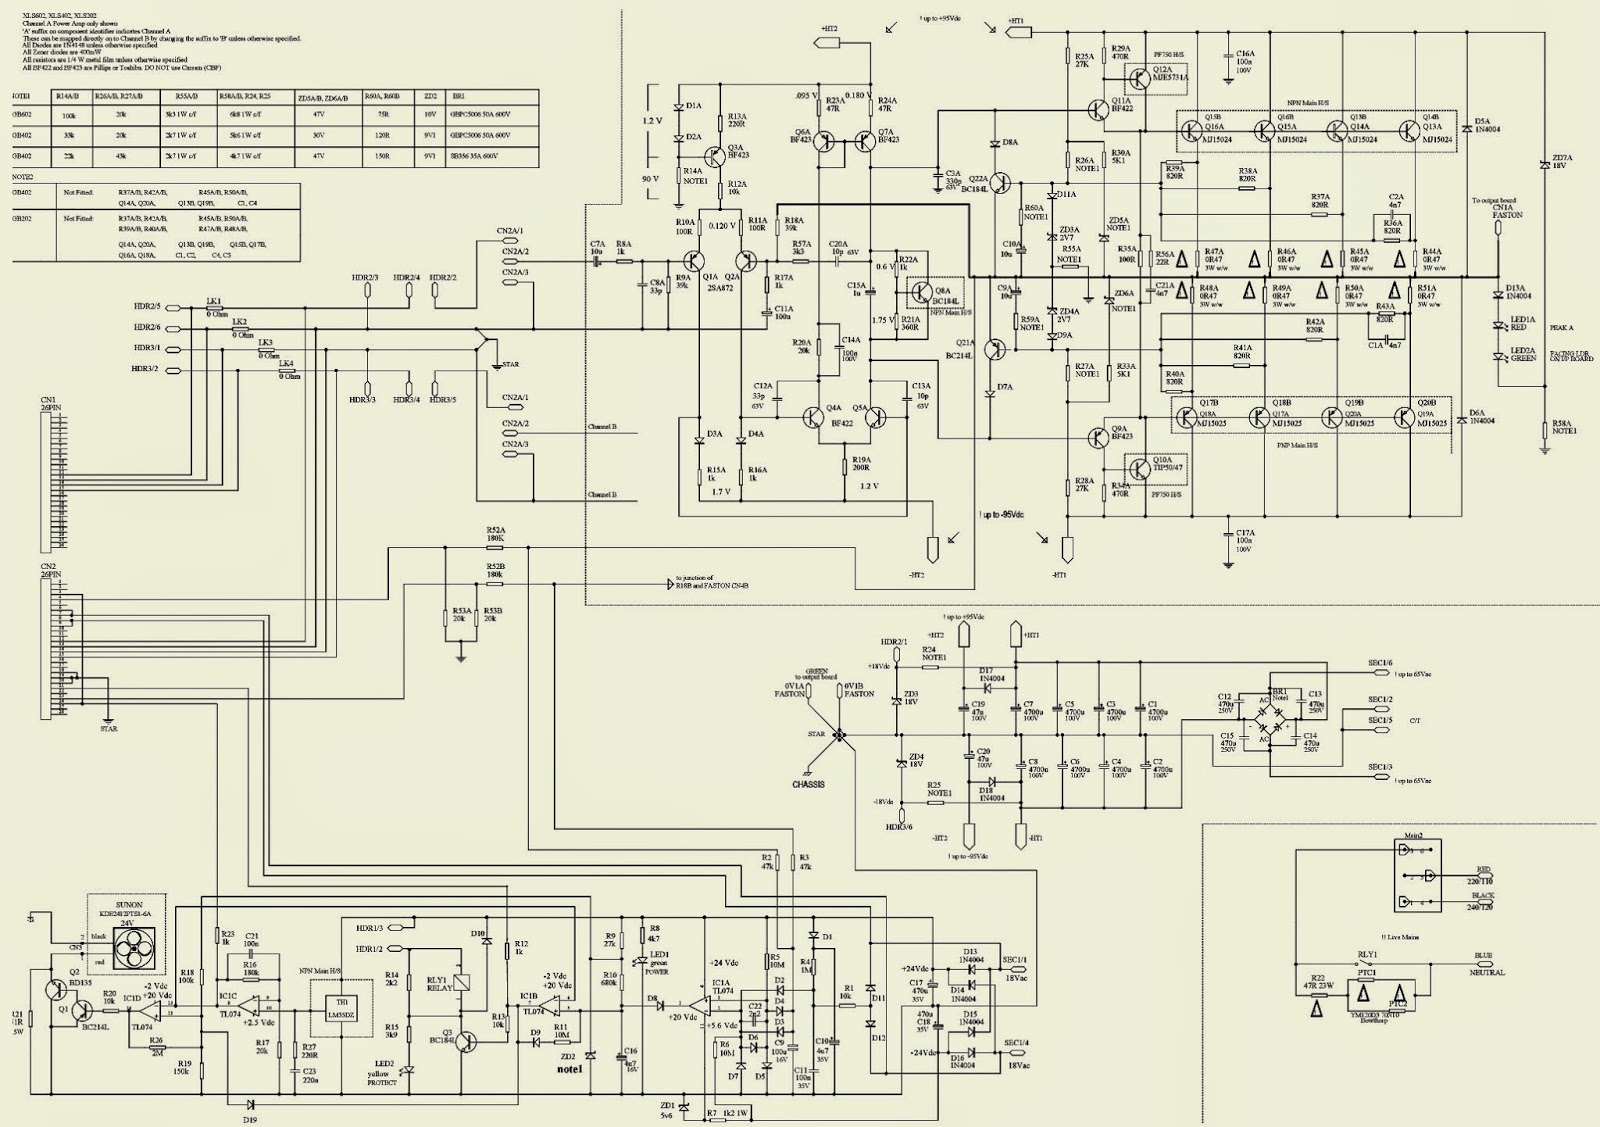 crown amp schematic electrical wiring diagram symbolscrown xls602 \\u2013 xls402 \\u2013 xls202 amp schematic (circuit diagramcrown xls602 \\u2013